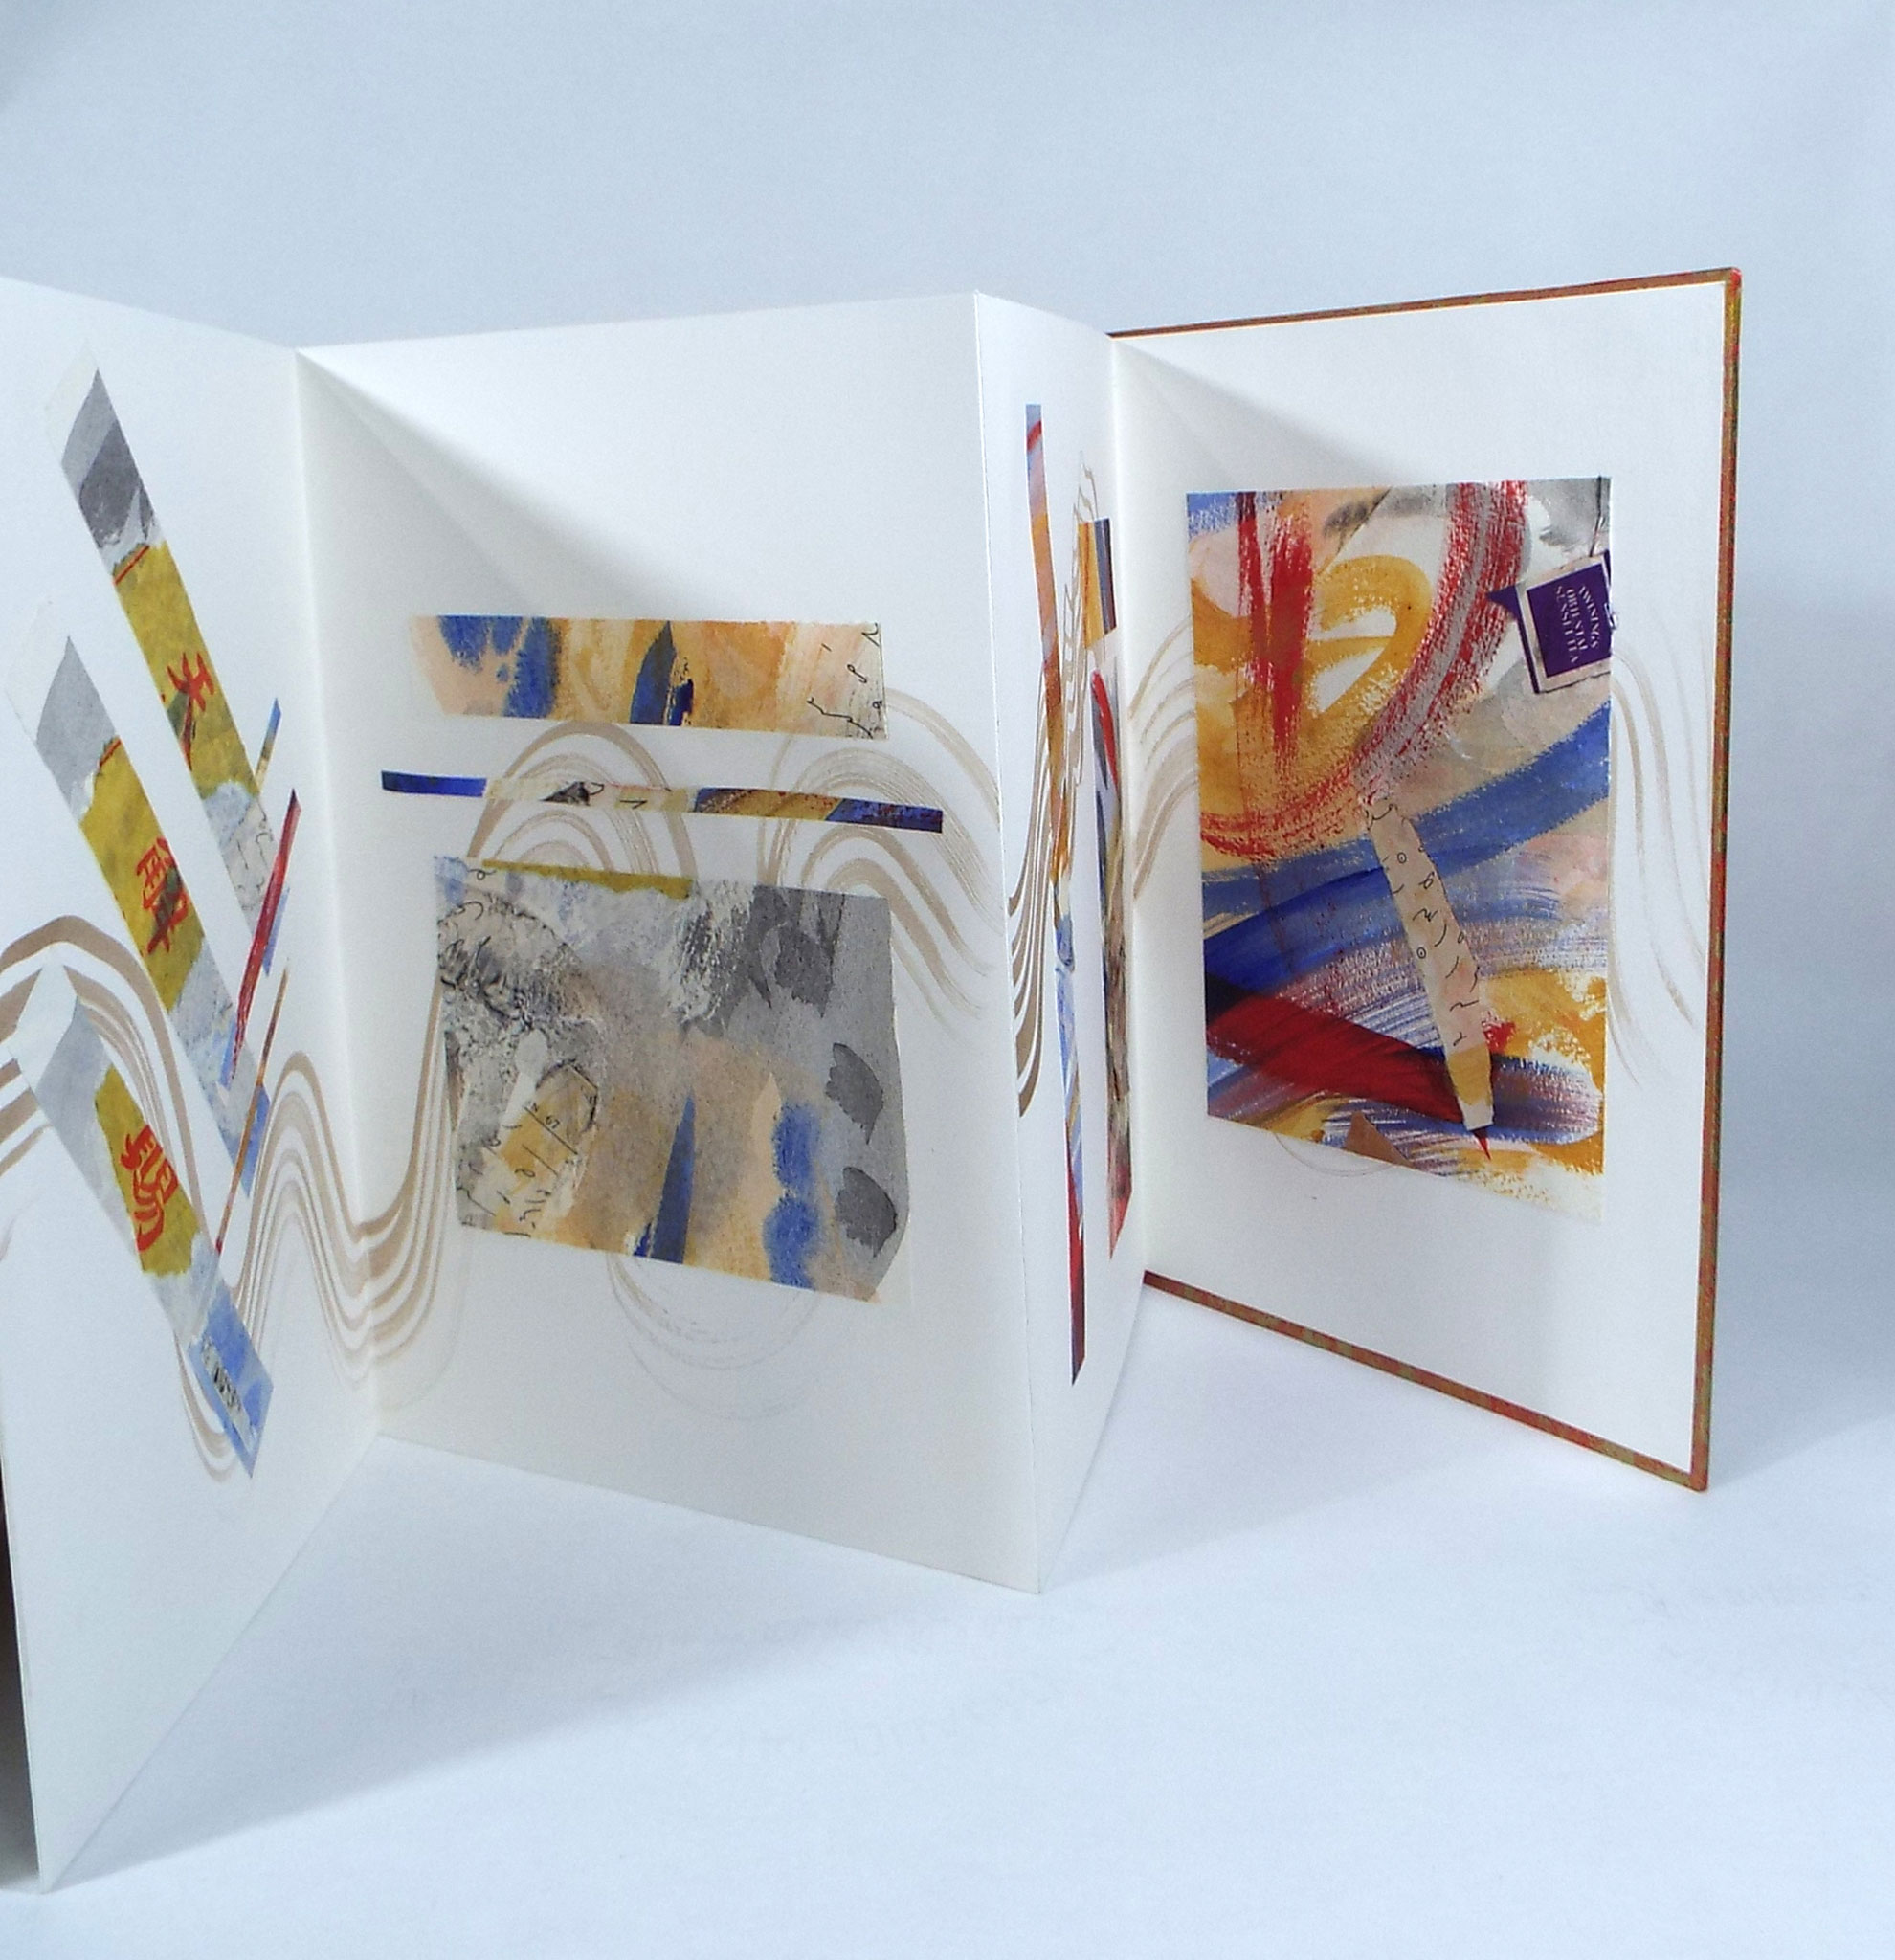 Laurel Rogers, Passionato Books, Inspiration in Santa Fe, Acrylic Painting, Collage, Walnut Ink, 2012, $275, Northampton, MA